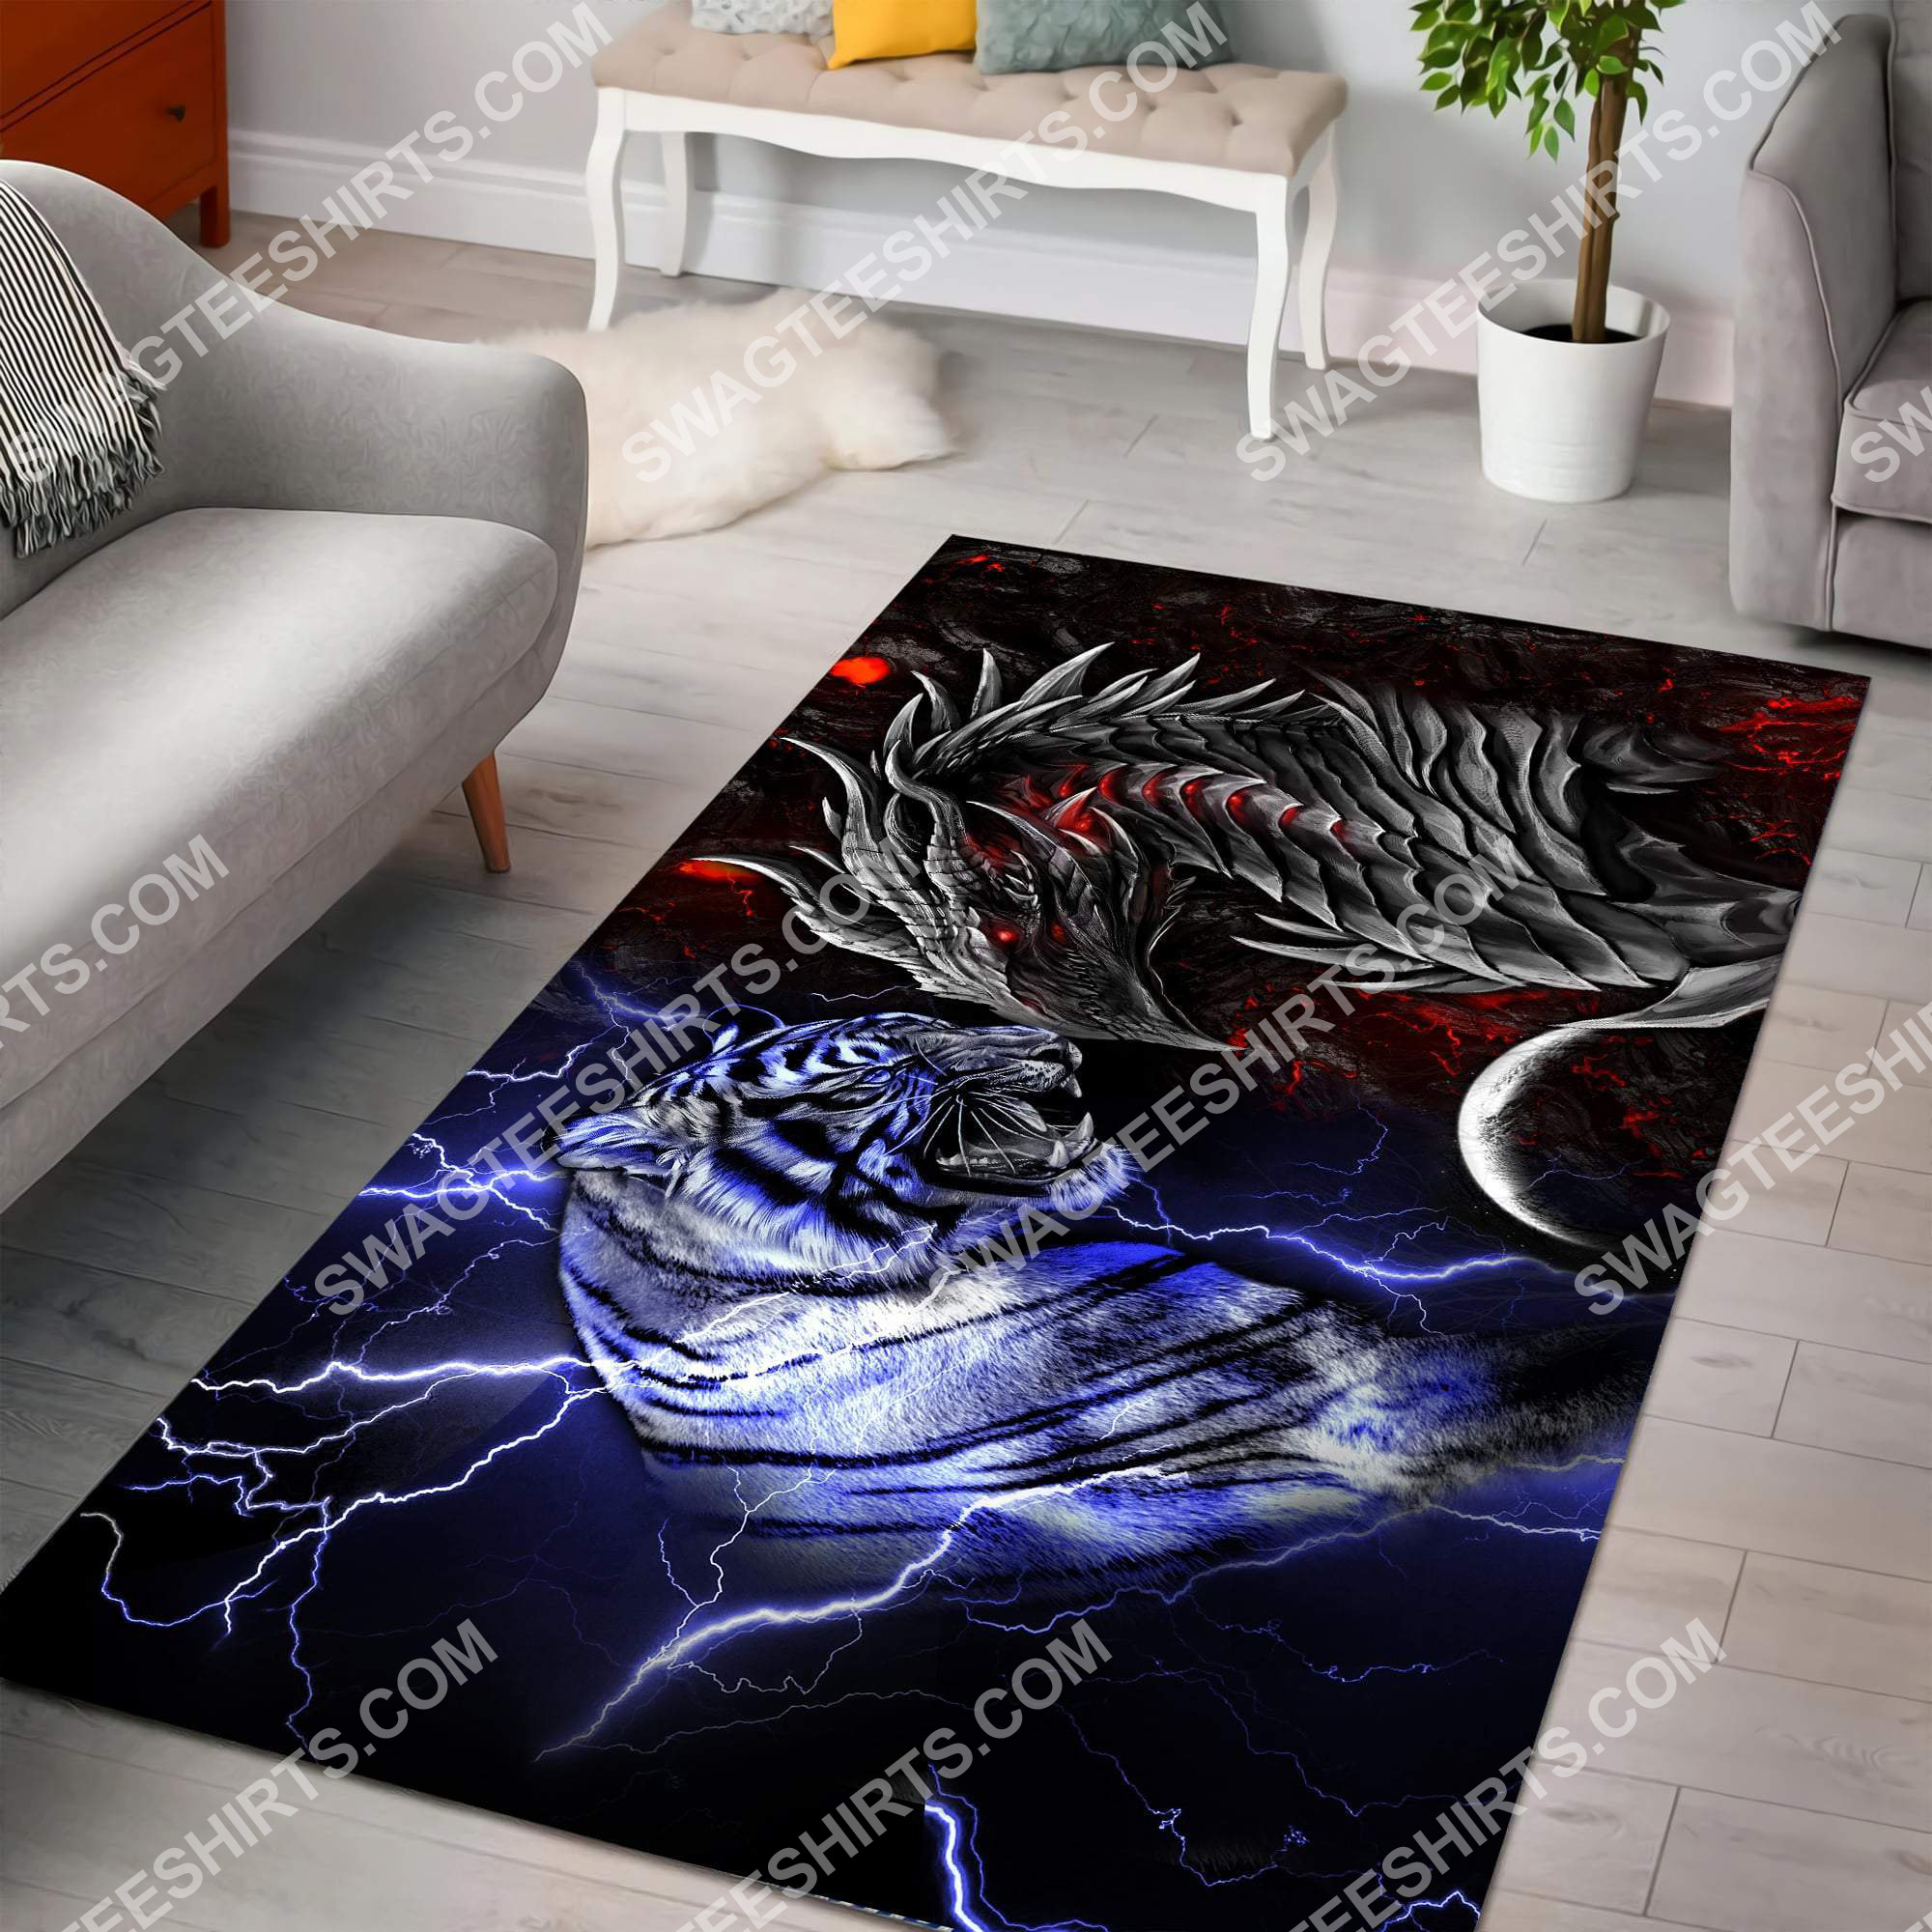 dragon and tiger fire and ice all over printed rug 2(1)